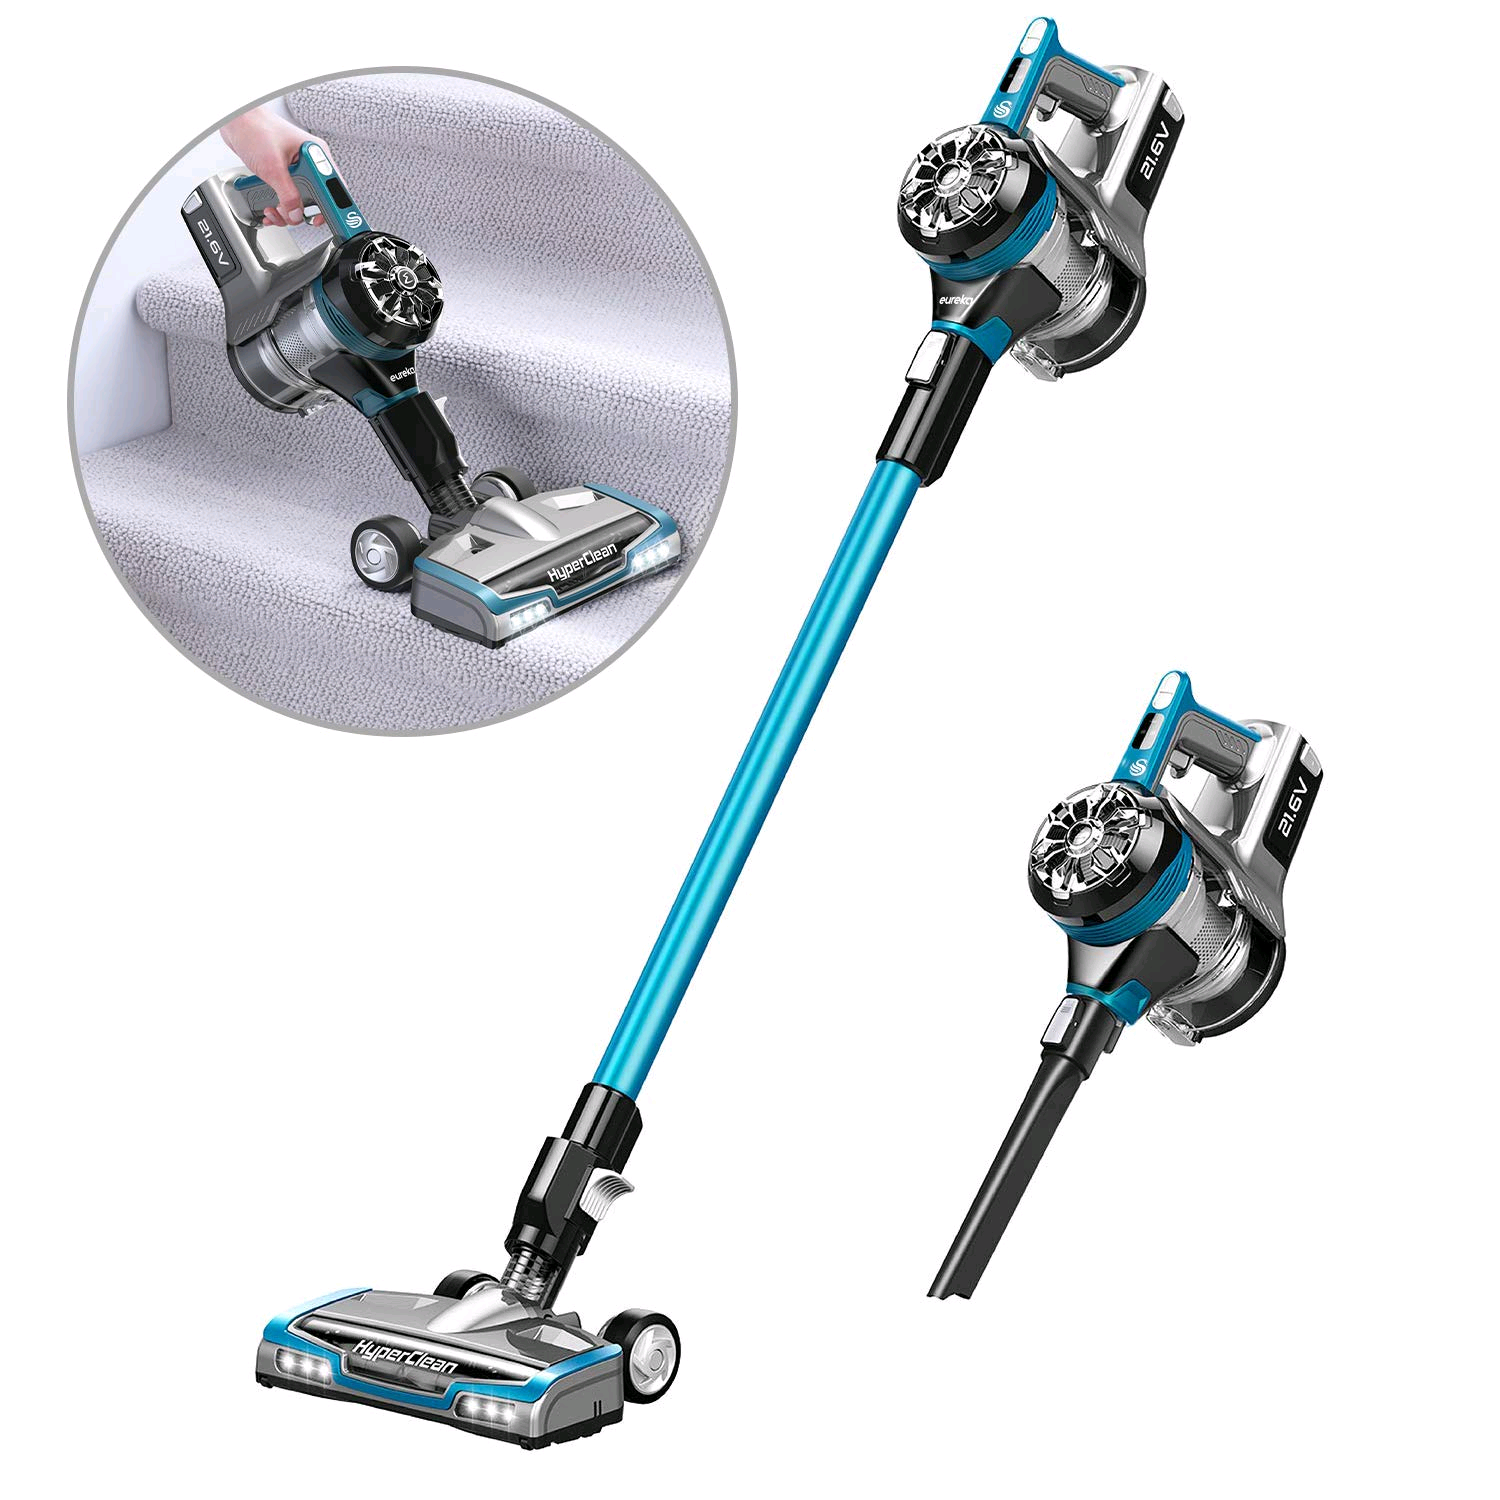 Swan Eureka SC15820N, HyperClean Cordless 3-in-1 Vacuum, Handheld, 21.6V Lithium-ion, Wall Mount, Turbo Mode, LED Lights and Lightweight Design